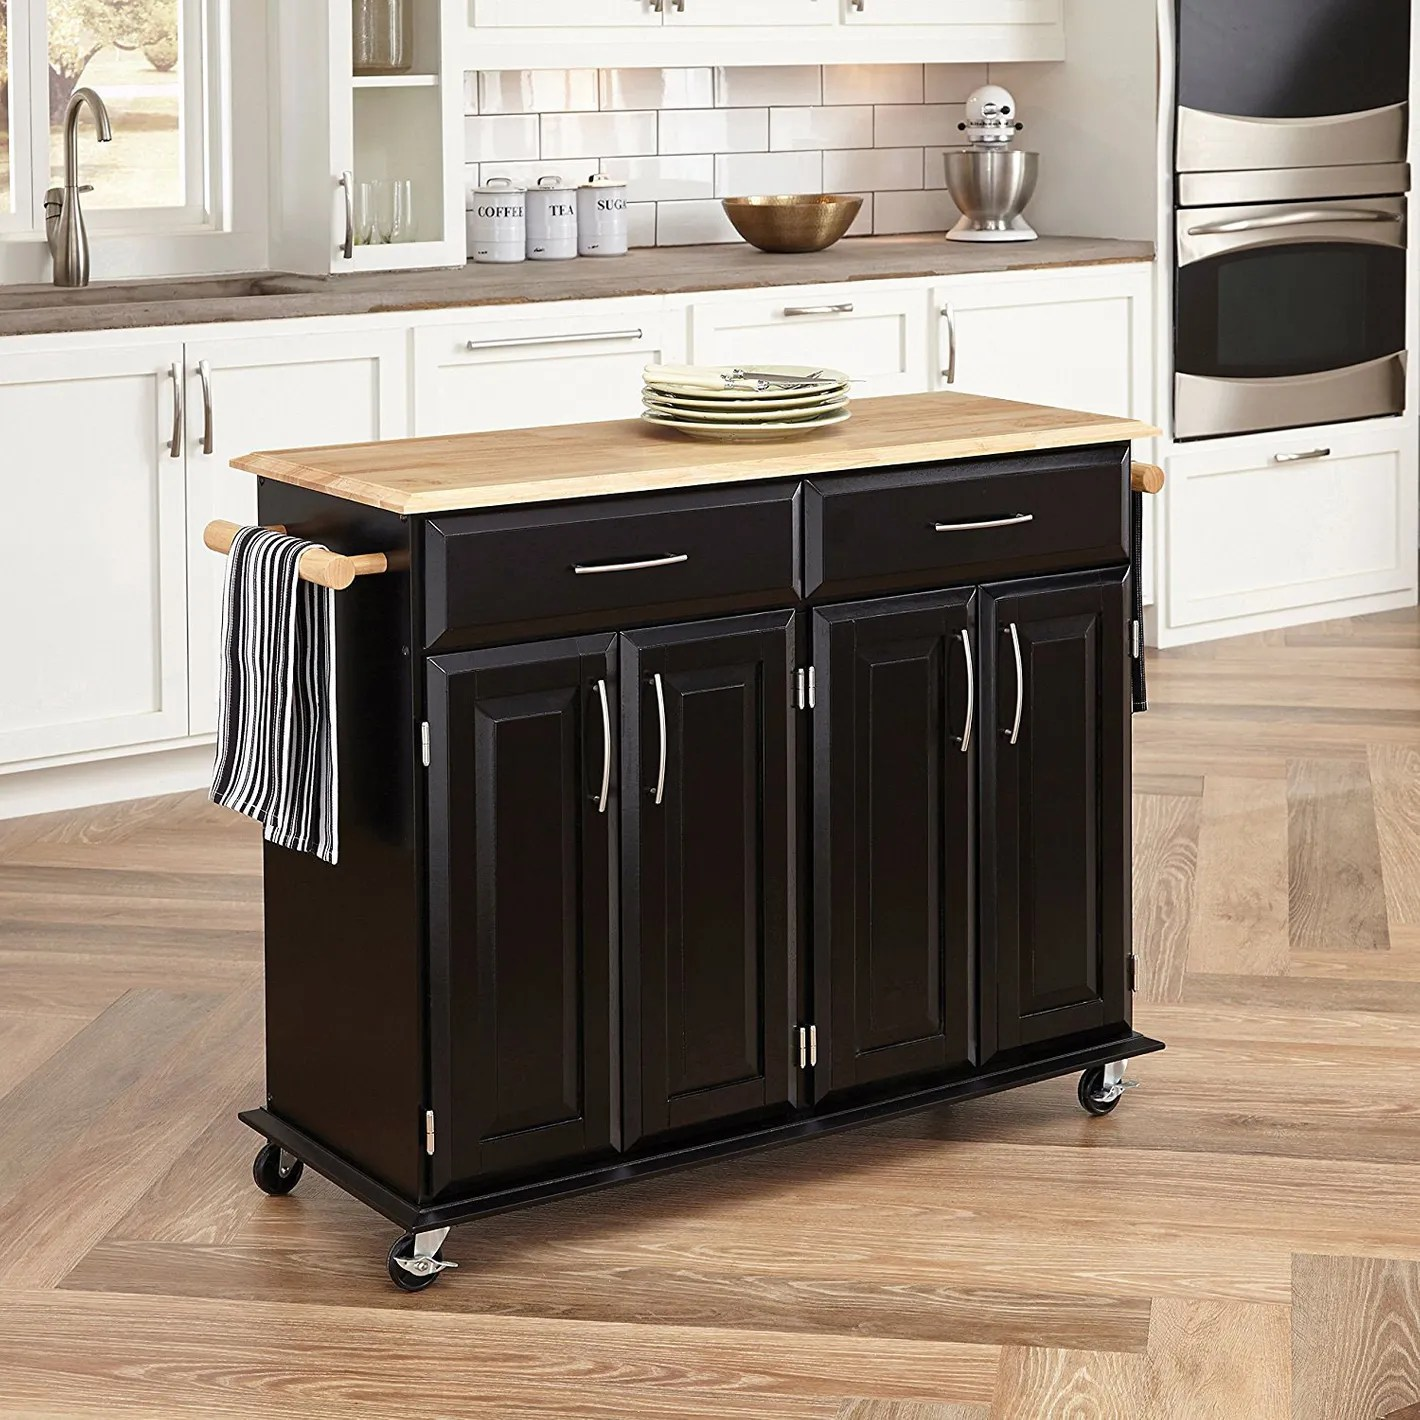 kitchen block big lots furniture the 14 best butcher islands and carts 2018 home styles 4528 95 dolly madison cart black finish